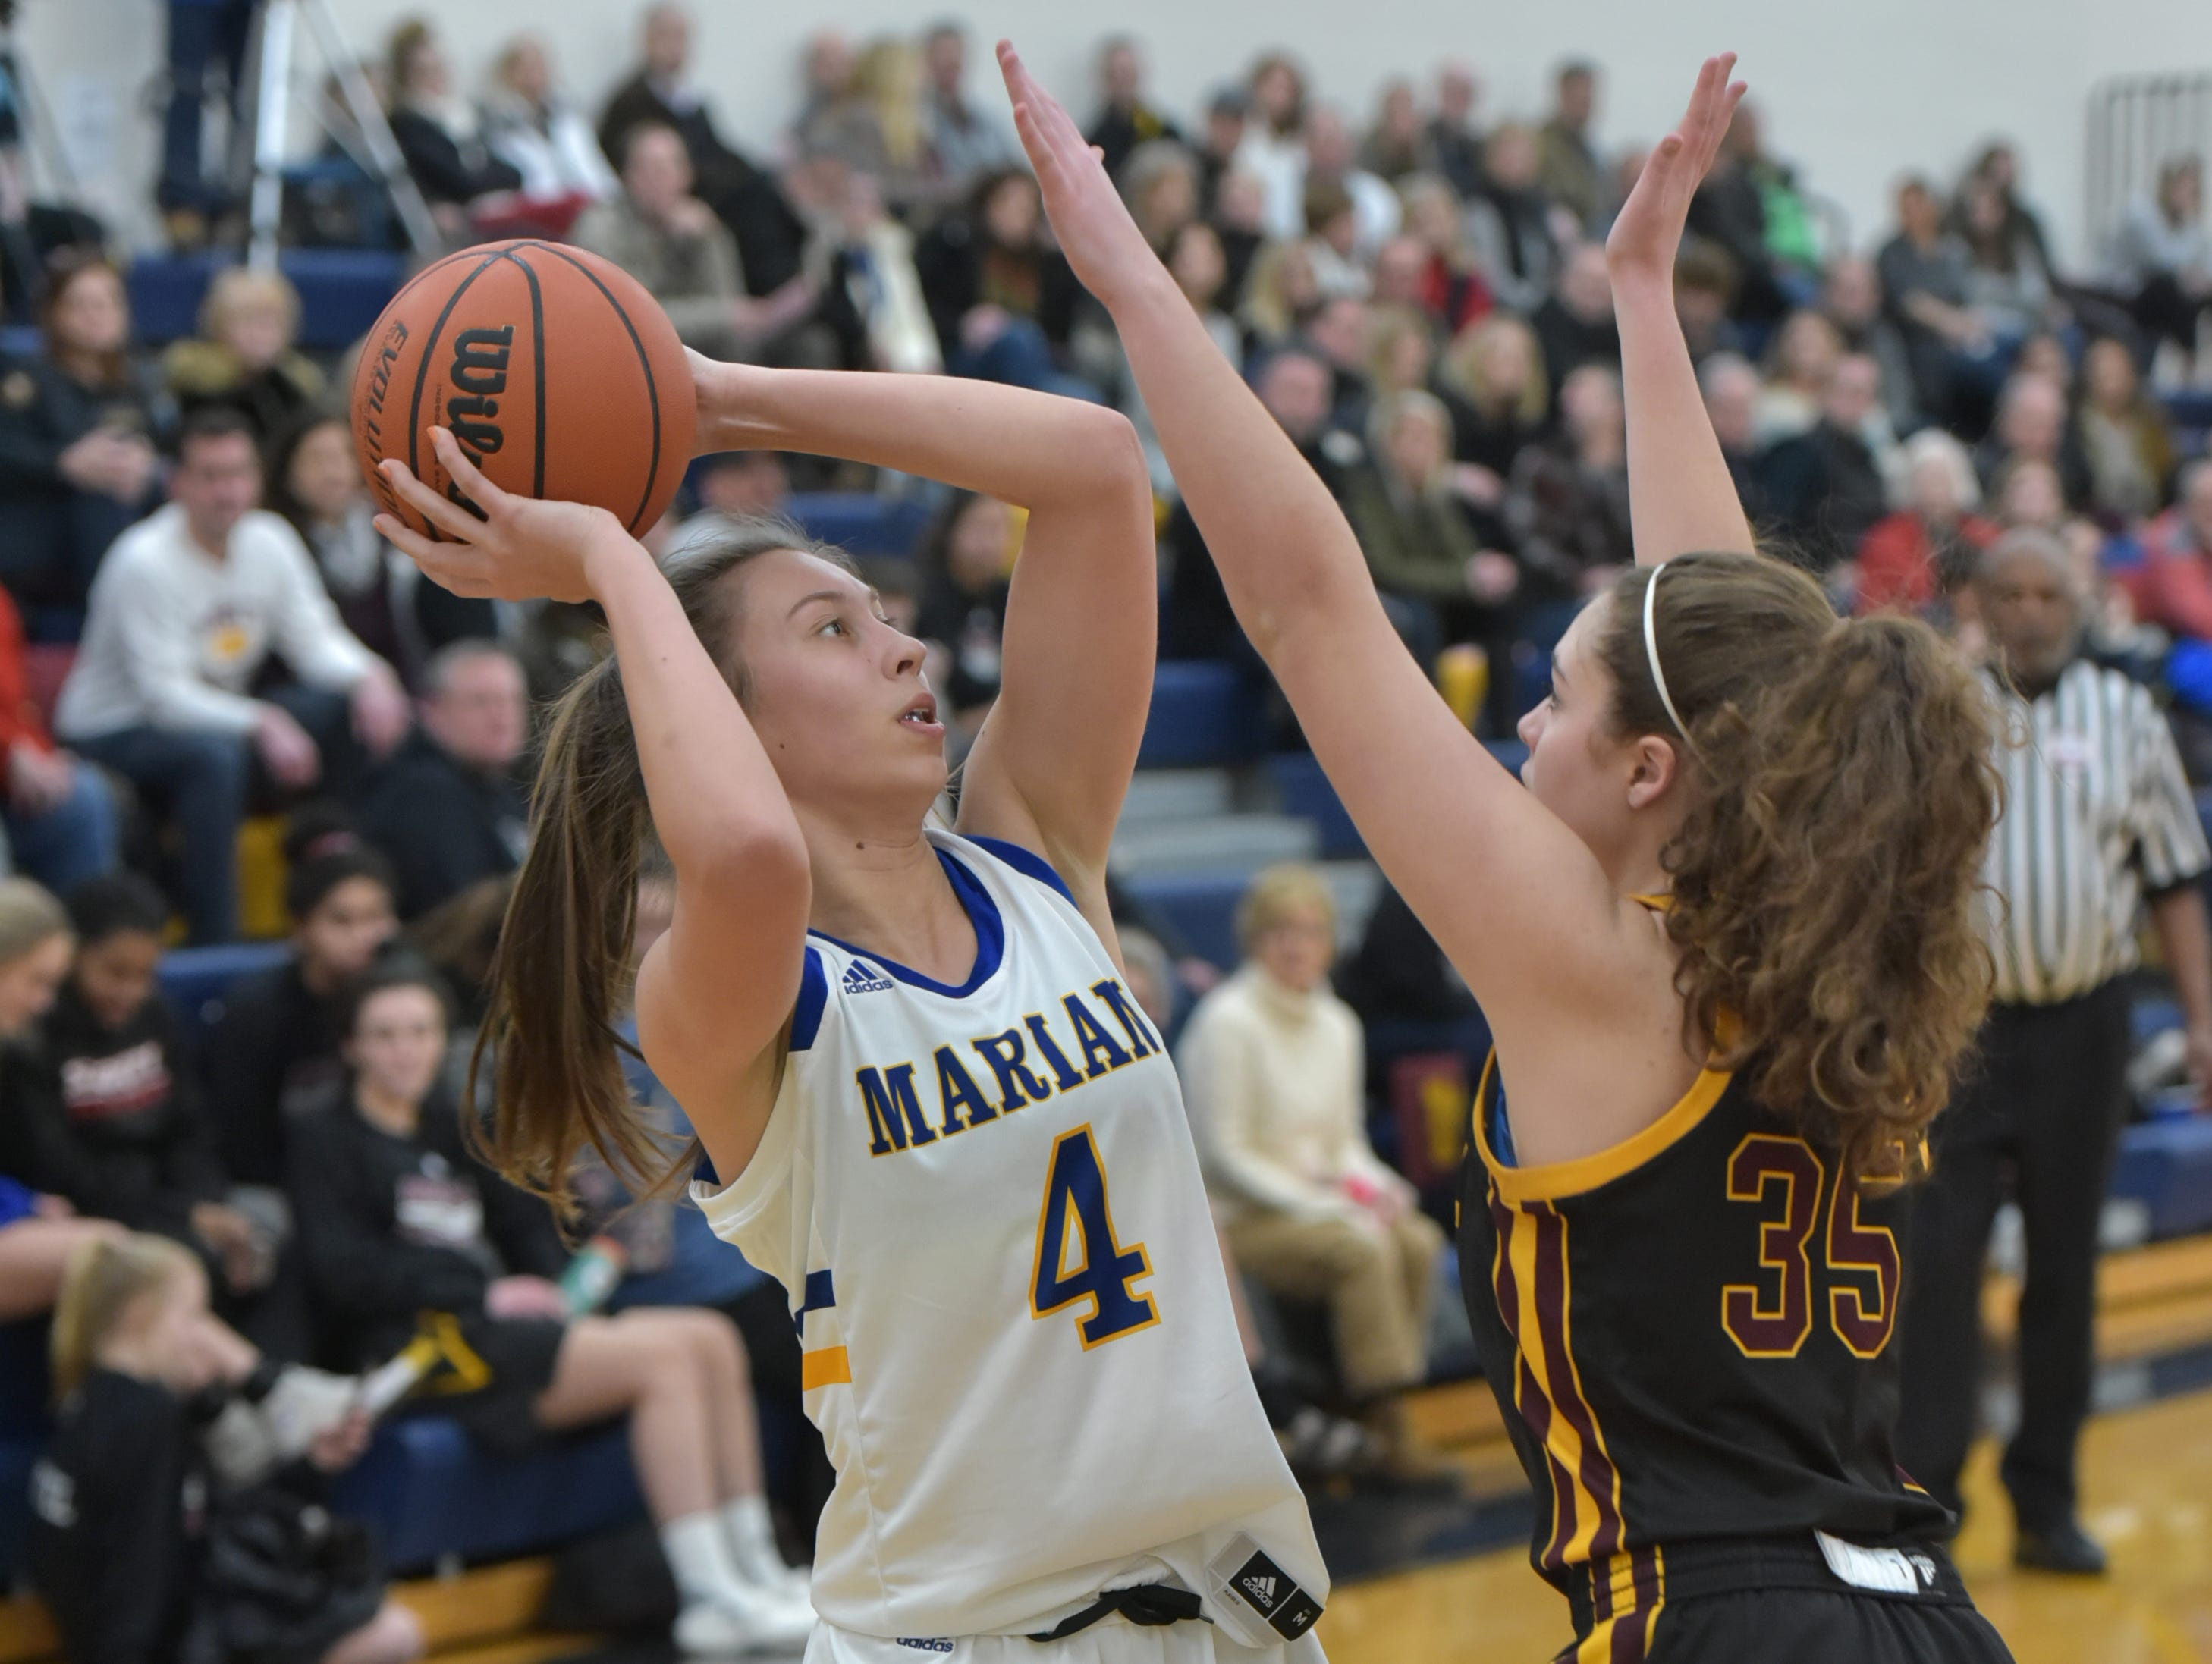 Marian High player Sarah Sylvester, left, feels some pressure from Farmington Mercy's Natalie Ballard.